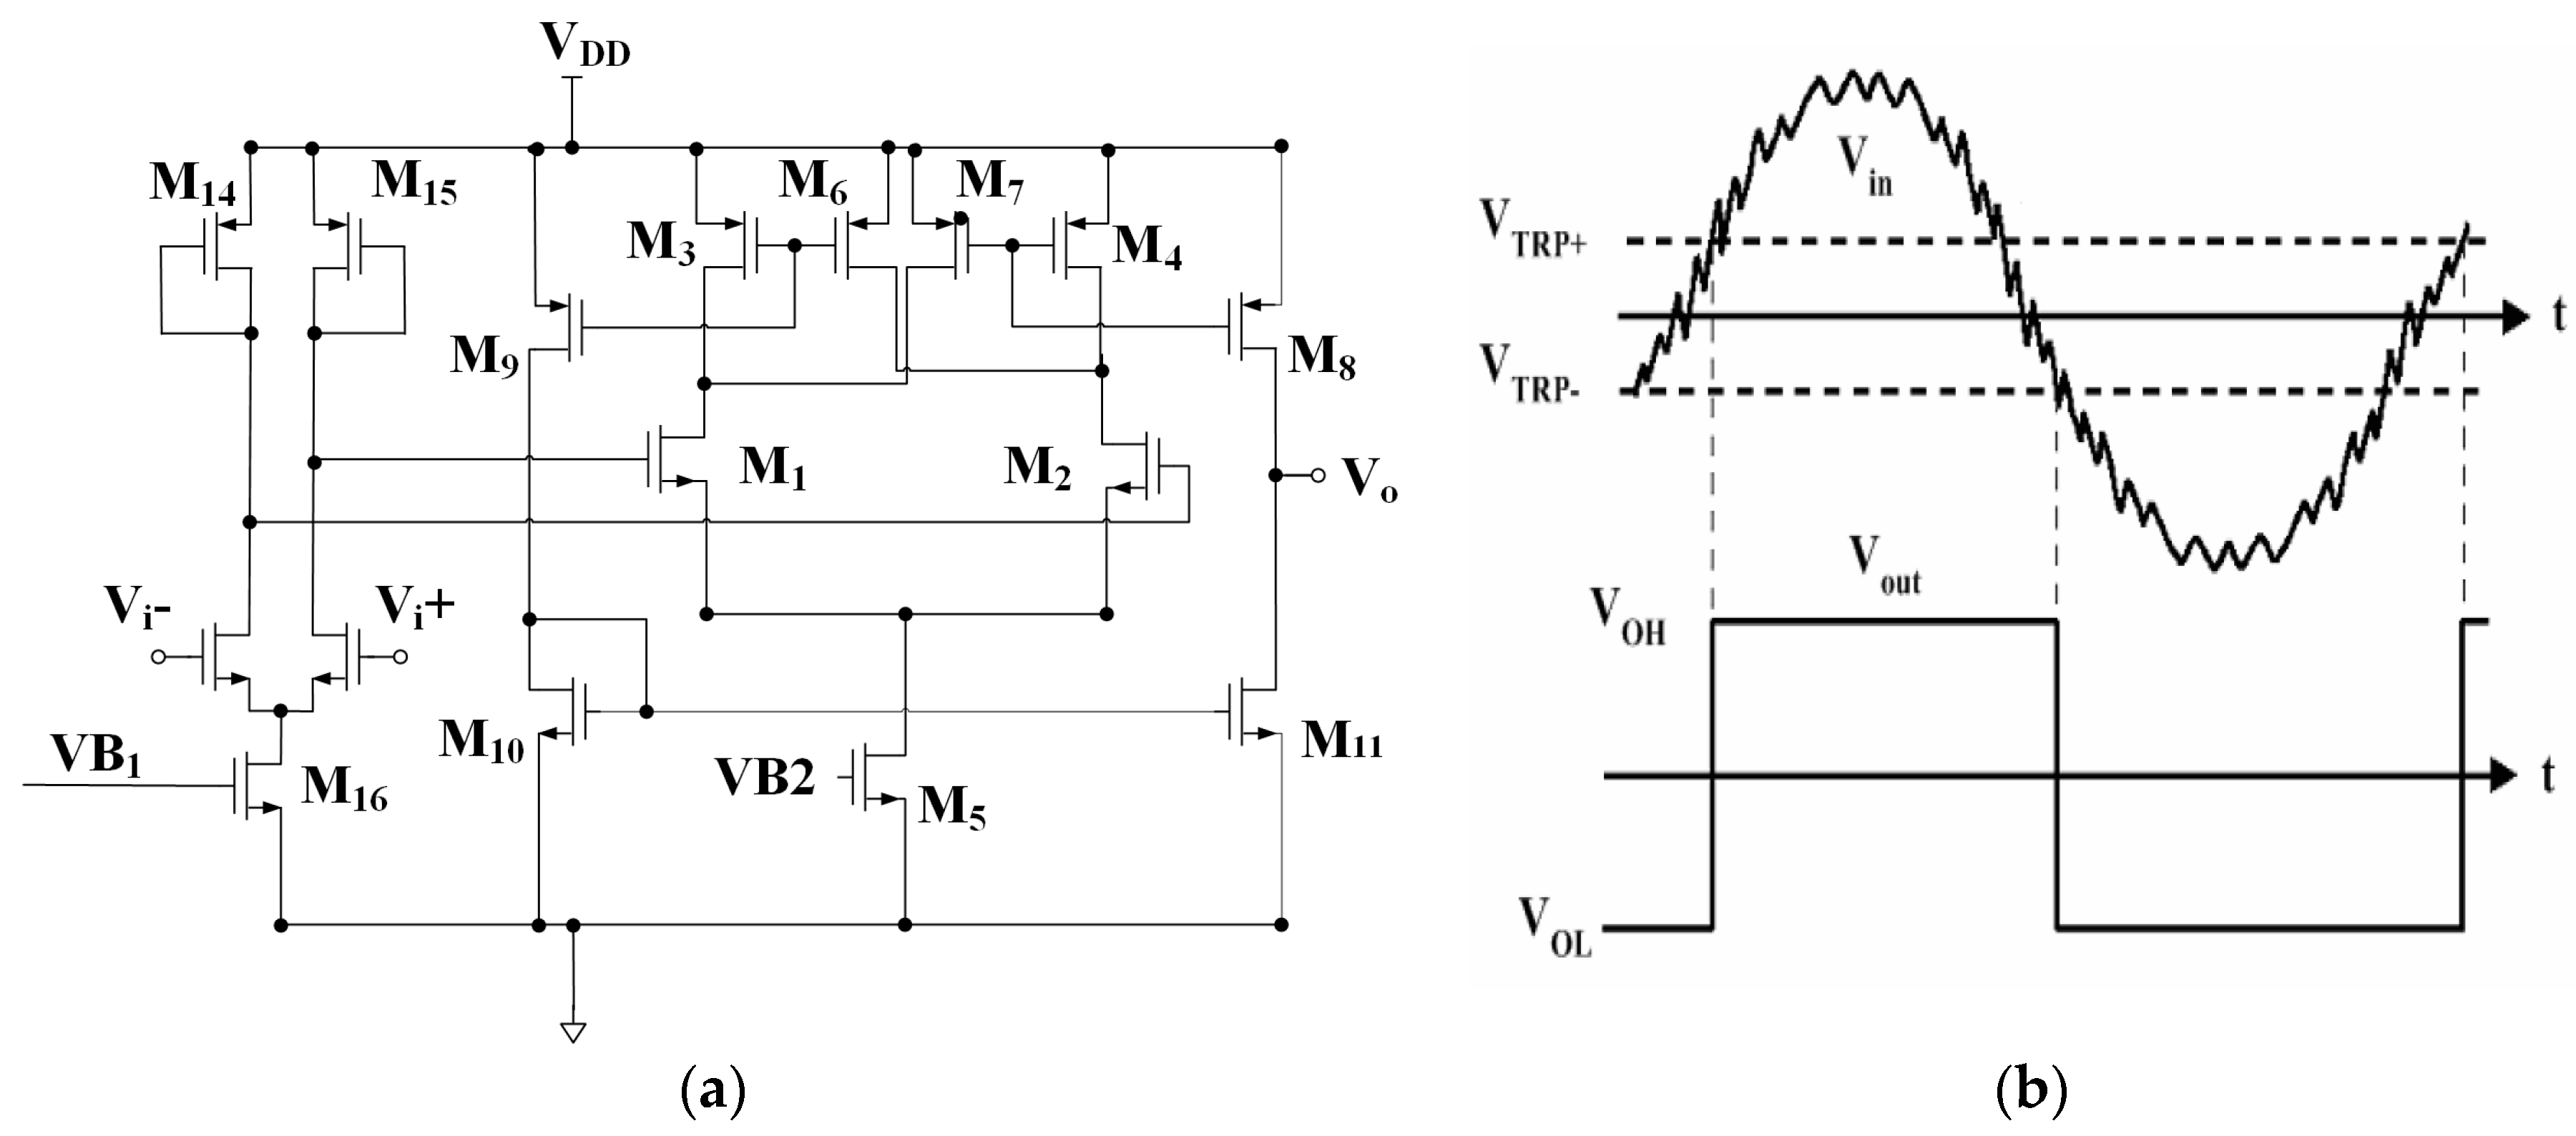 Sensors Free Full Text The Front End Readout As An Encoder Ic Figure 2 Circuit For Connecting Optical Sensor To A Digital I O 16 01416 G007 7